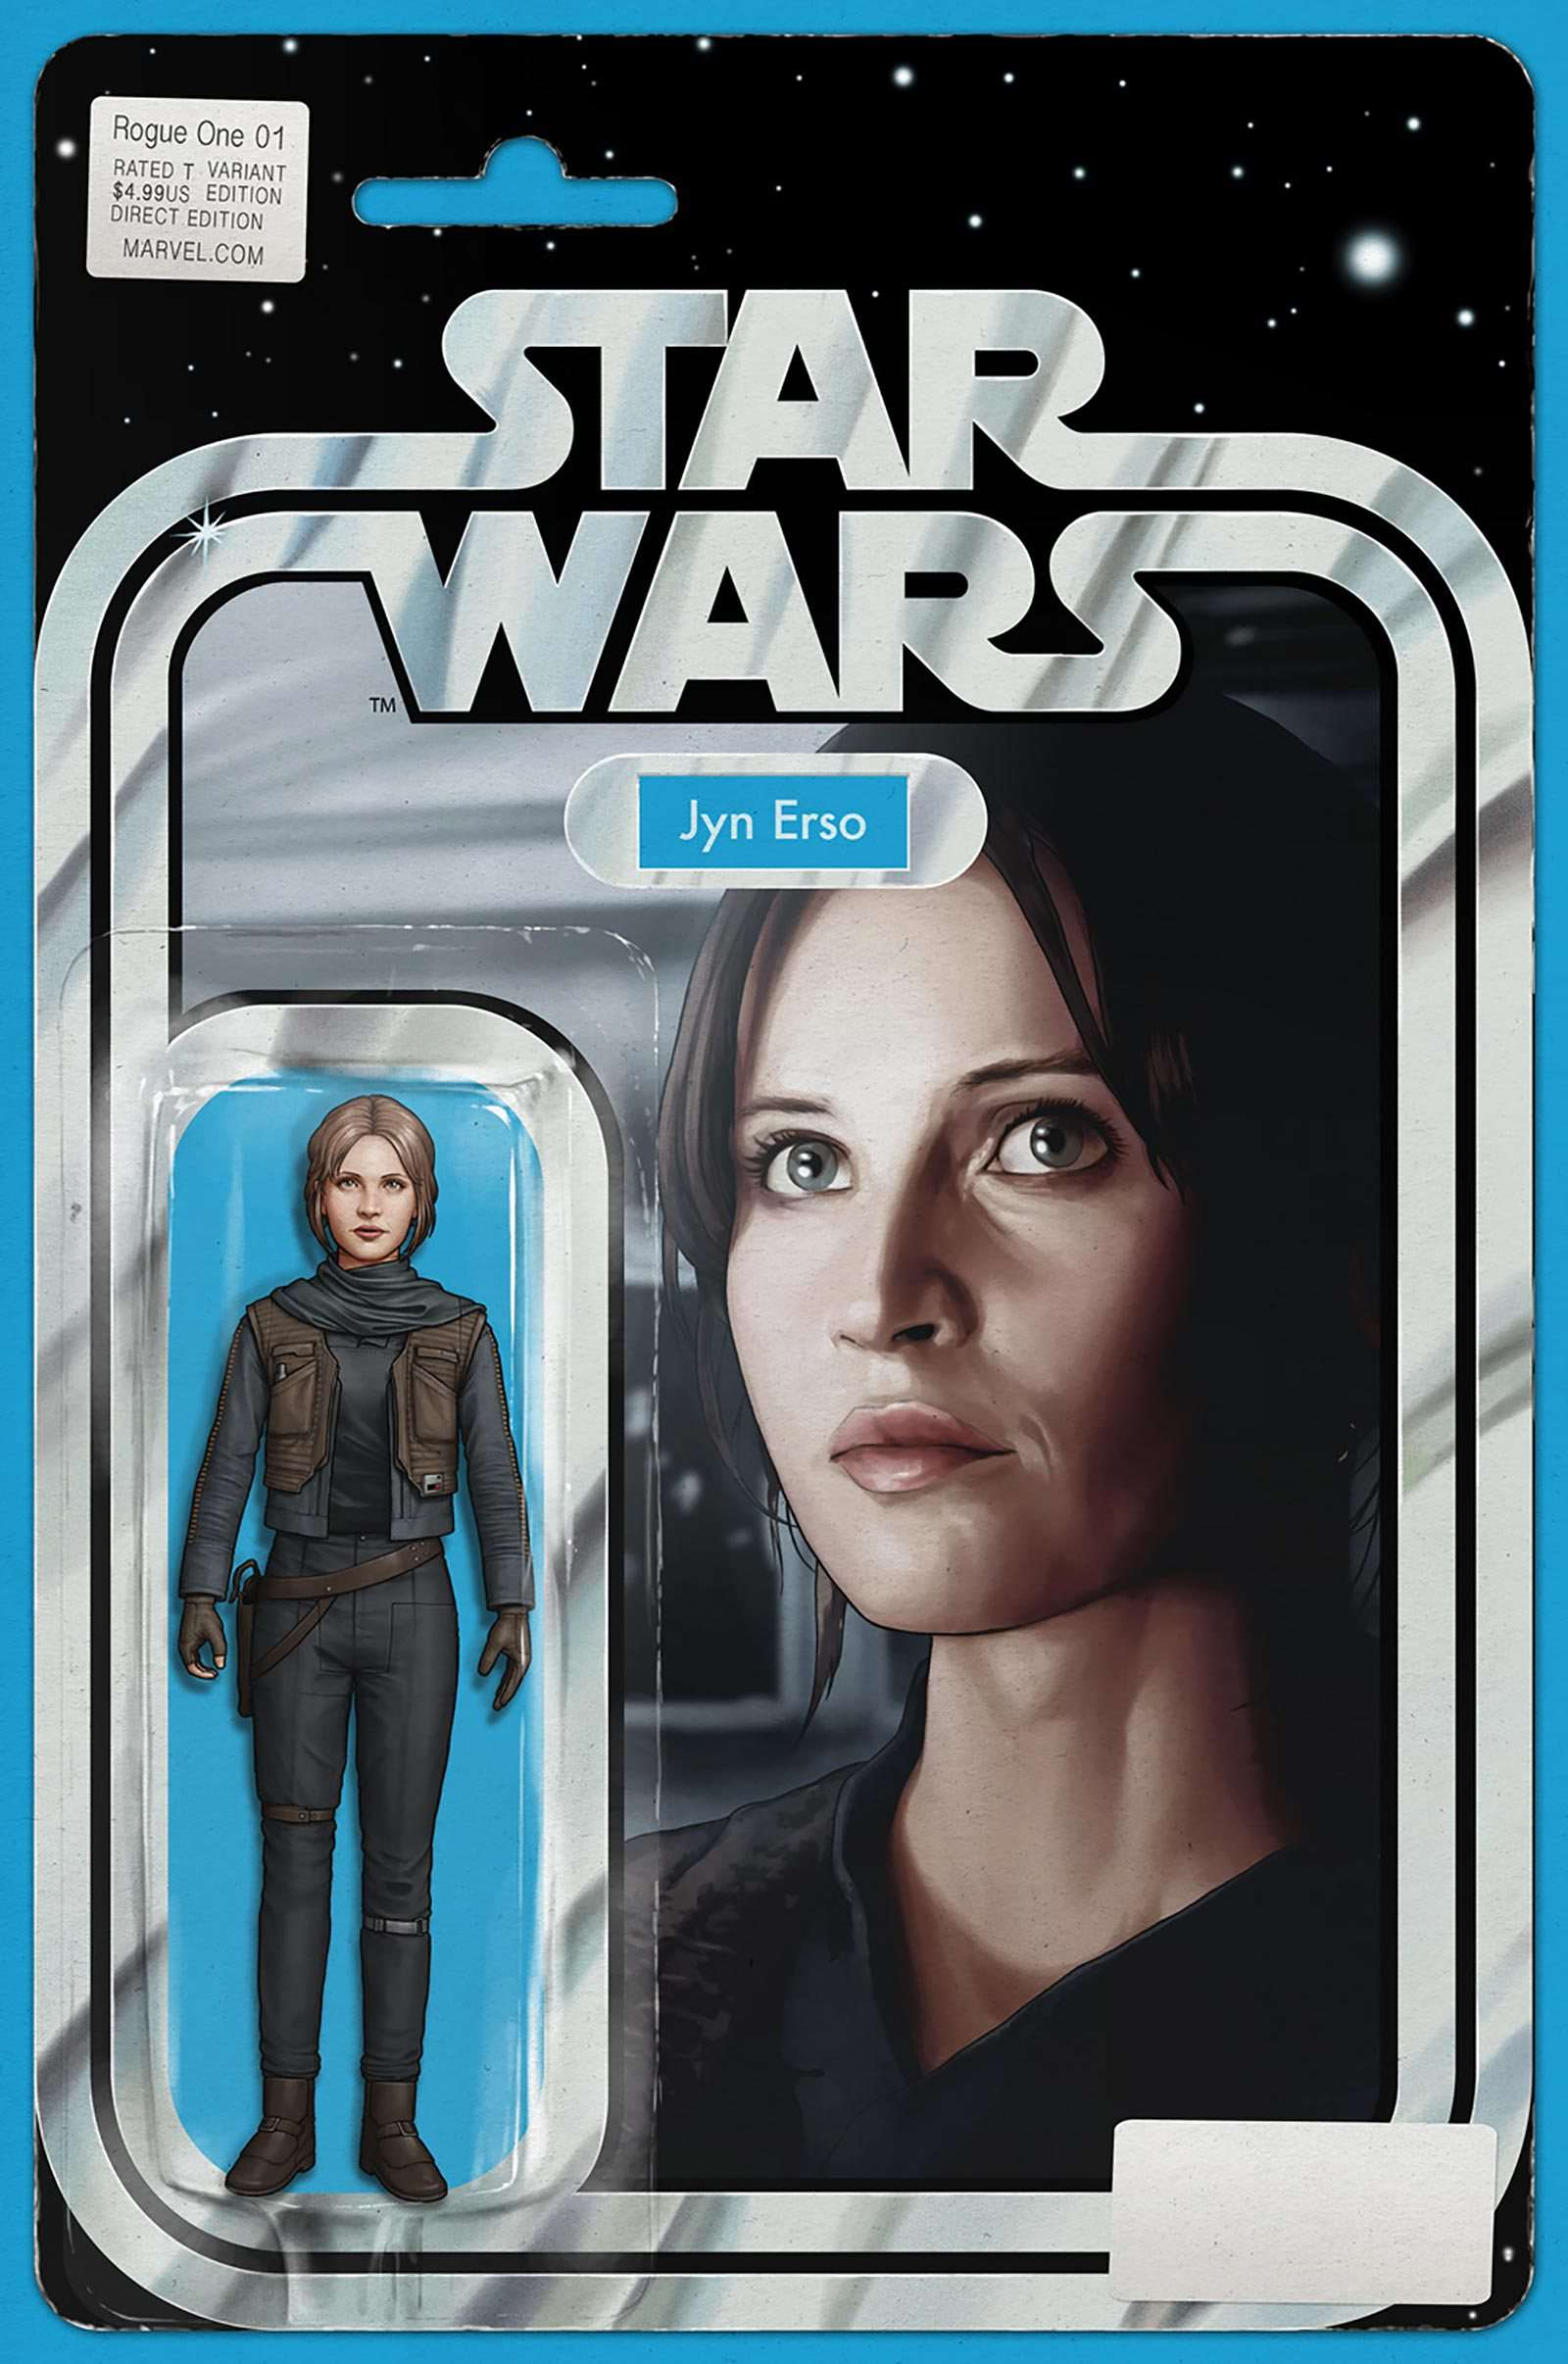 Rogue one #1 action figure variant